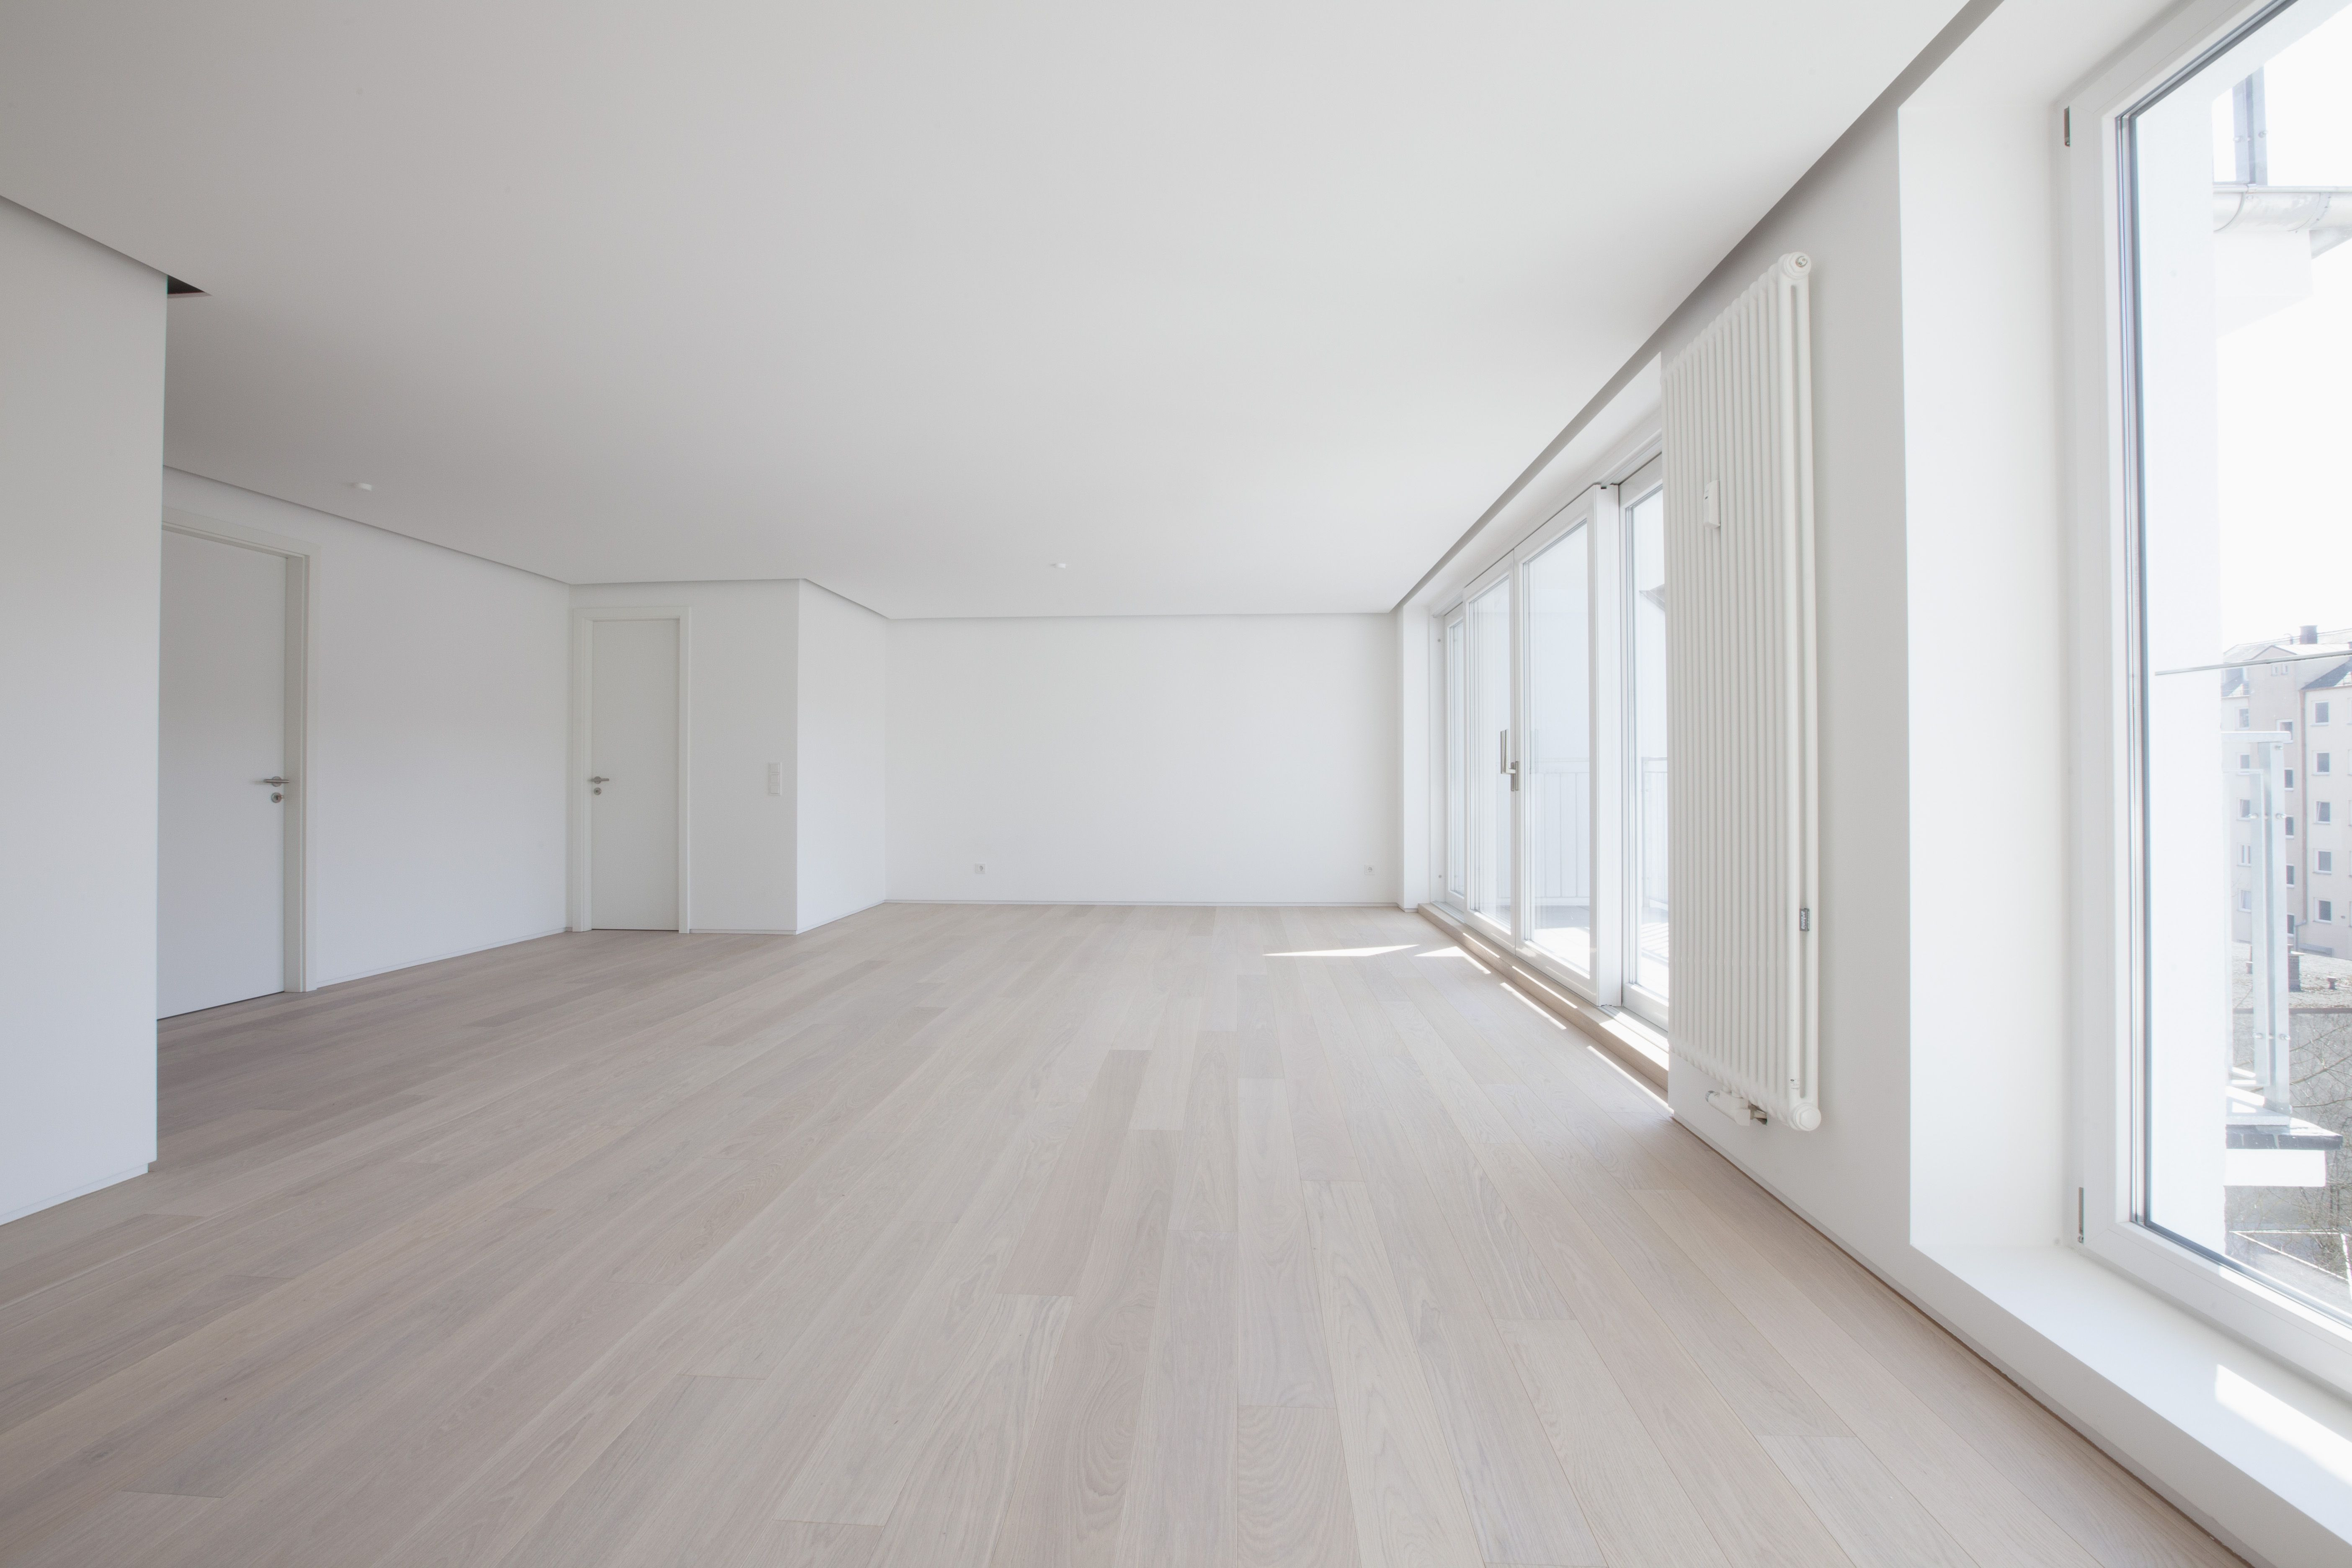 dark engineered hardwood flooring of basics of favorite hybrid engineered wood floors within empty living room in modern apartment 578189139 58866f903df78c2ccdecab05